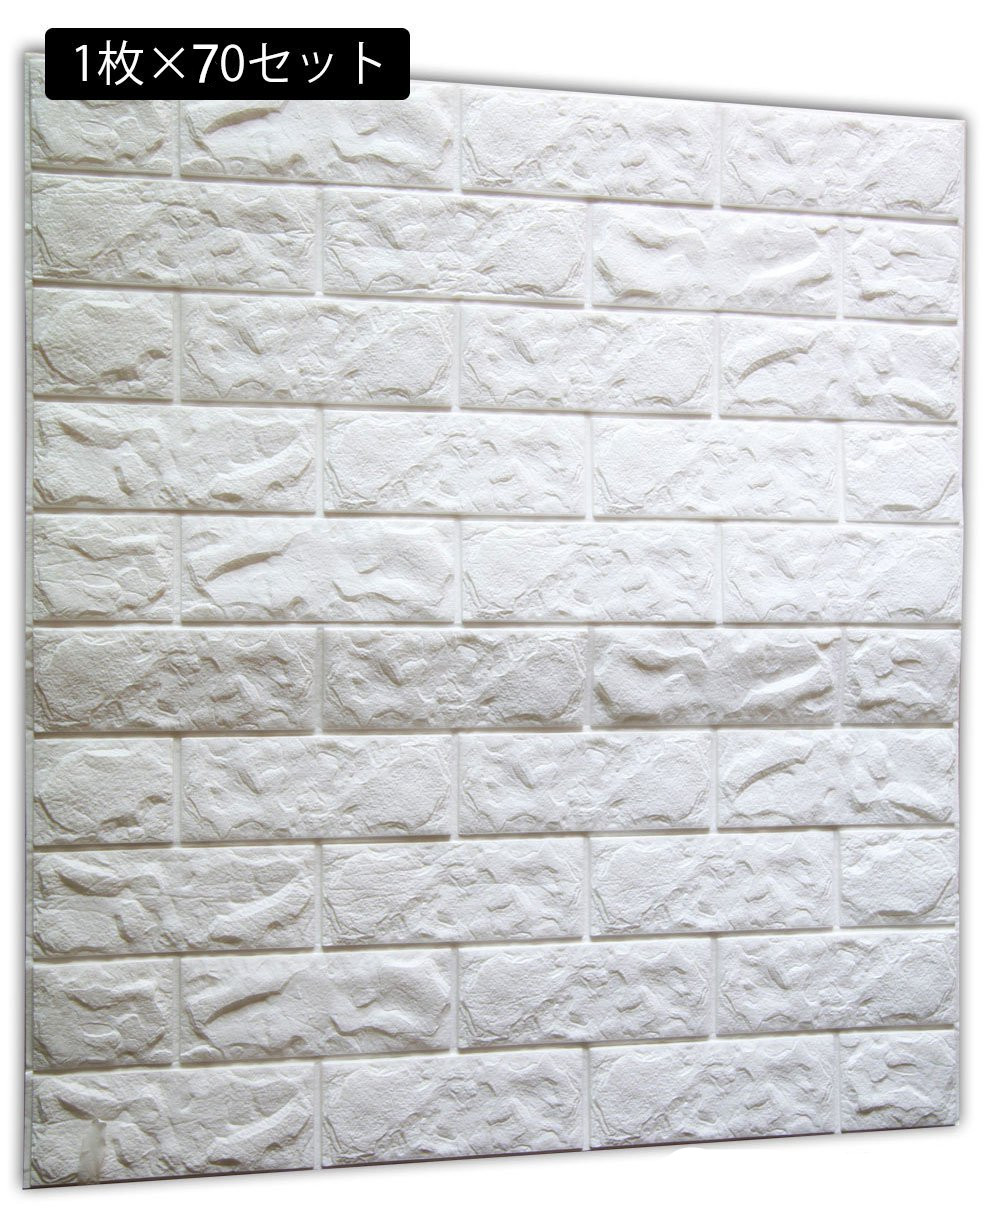 70 pcs PE Foam 3D Wallpaper DIY Wall Stickers Wall Decor Embossed Brick Stone Brick pattern 3D Textured PE Foam Wallpaper Wall junior republic 021